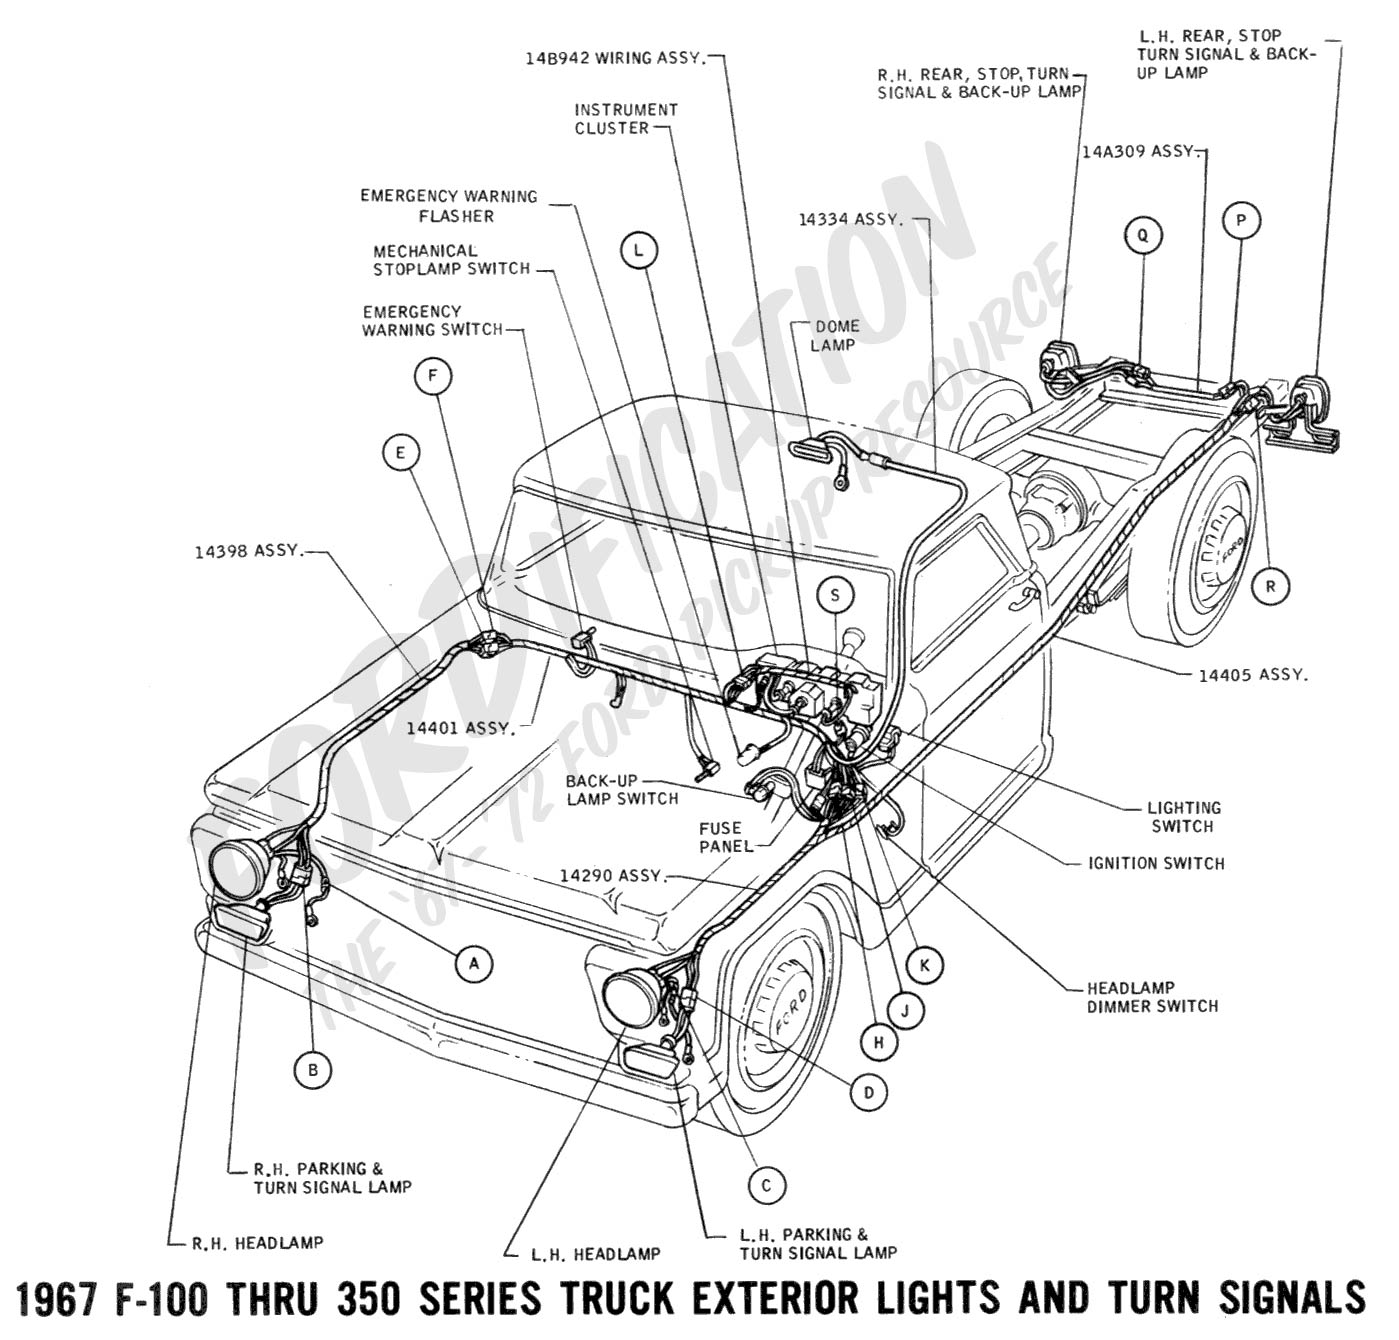 7mx8m Chevrolet Silverado Brake Lights Dont Work Changed likewise Moog Packagedeal041 besides HP PartList in addition 2rnmo 01 Dodge Ram 1500 When Tilt Steering Wheel likewise Mopar performance dodge truck magnum interior. on 1995 chevy 1500 steering column diagram